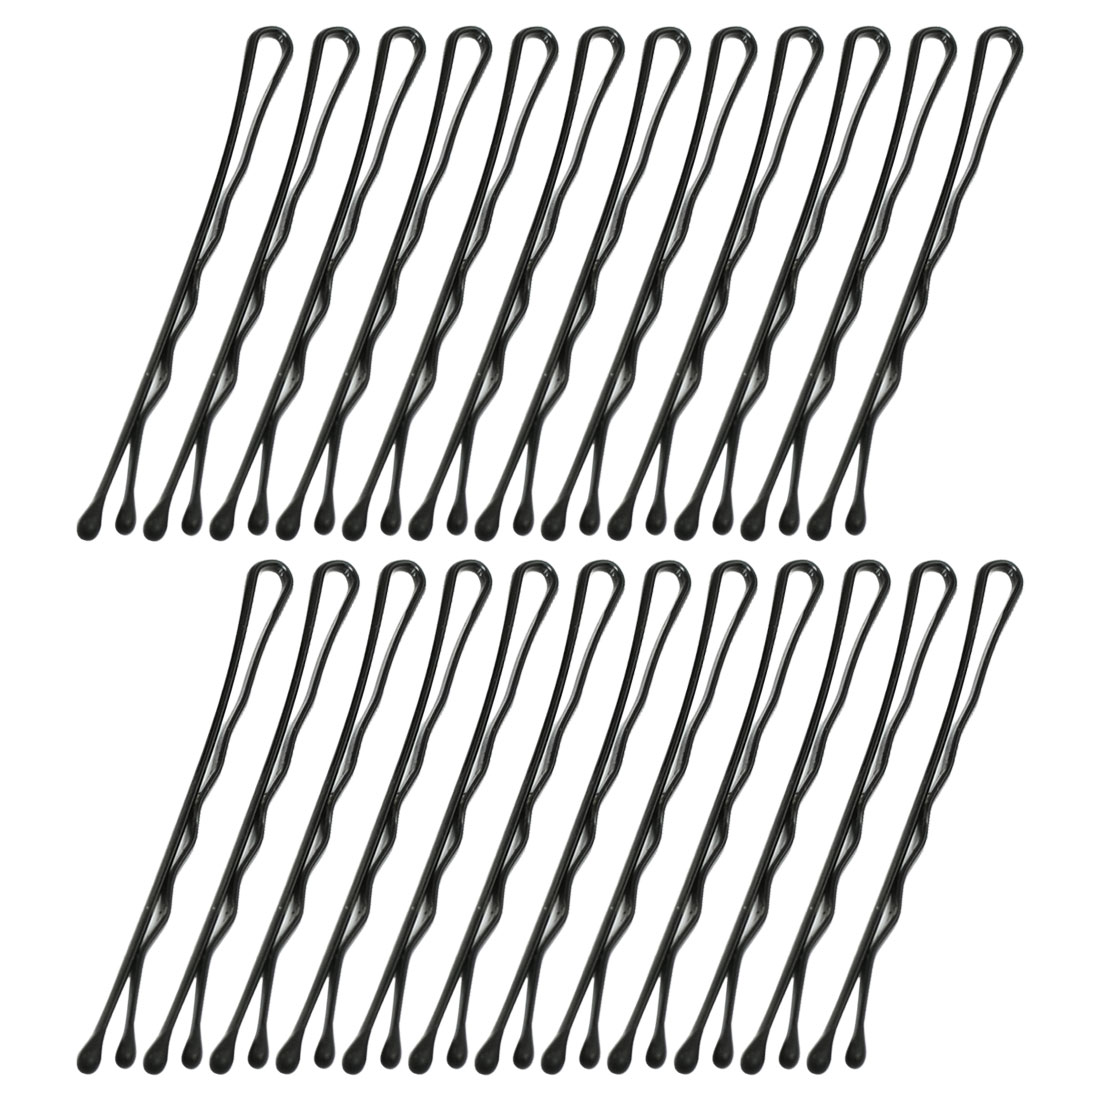 Women Hairstyling Metal Bobby Pin Clip Clamp Black 24 Pcs